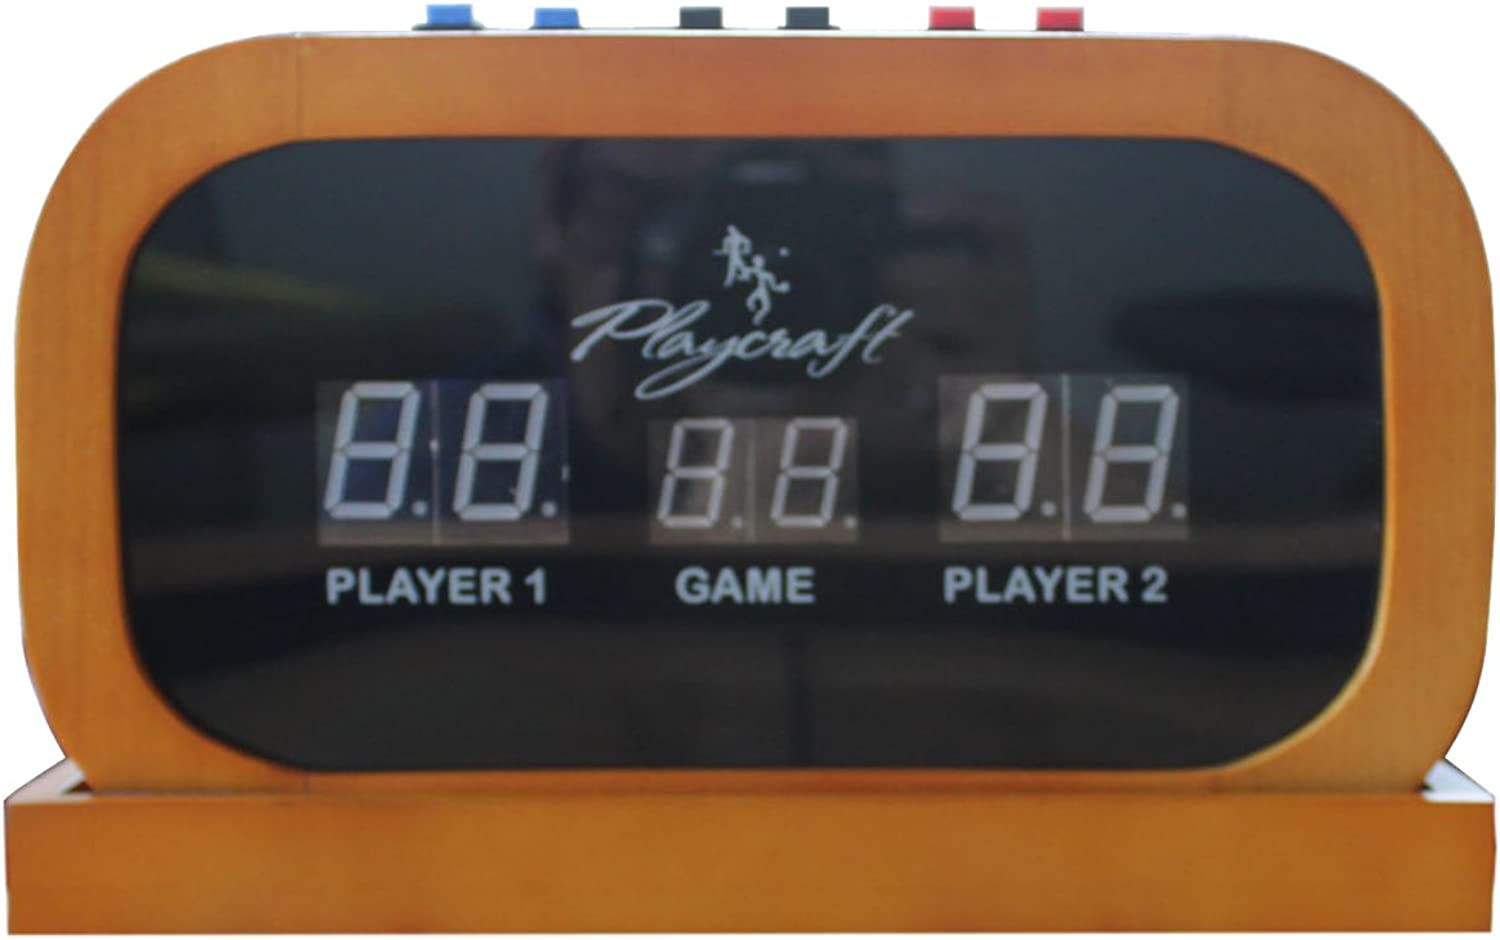 Playcraft Electronic Scorer for Home Recreation Shuffleboard Table, Honey, 11